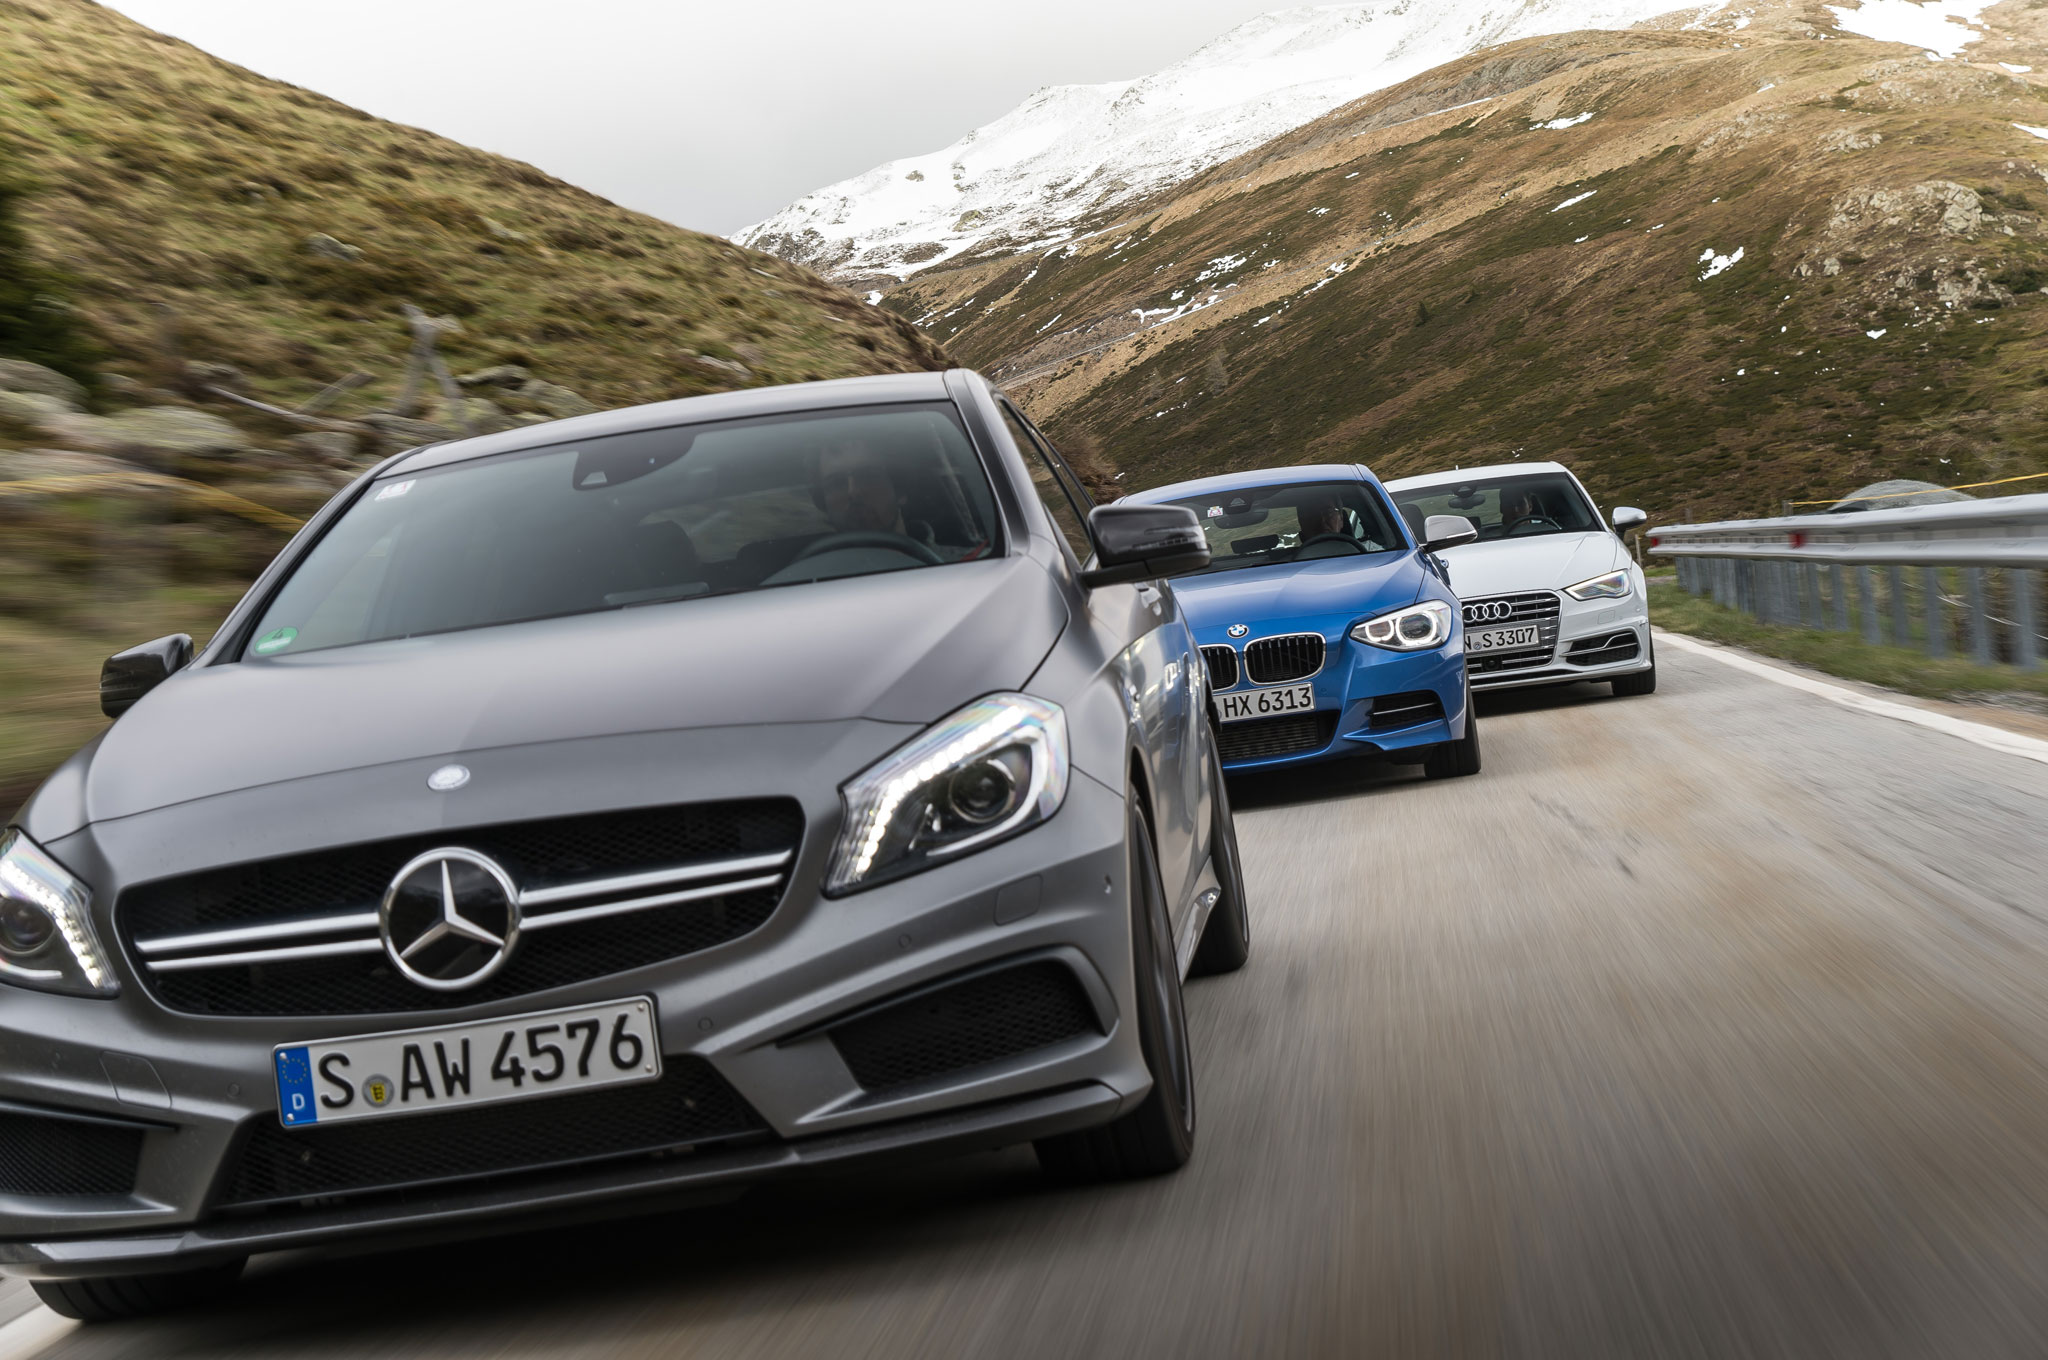 Audi-A3-vs-BMW-M135i-vs-Mercedes-Benz-A45-AMG-front-view